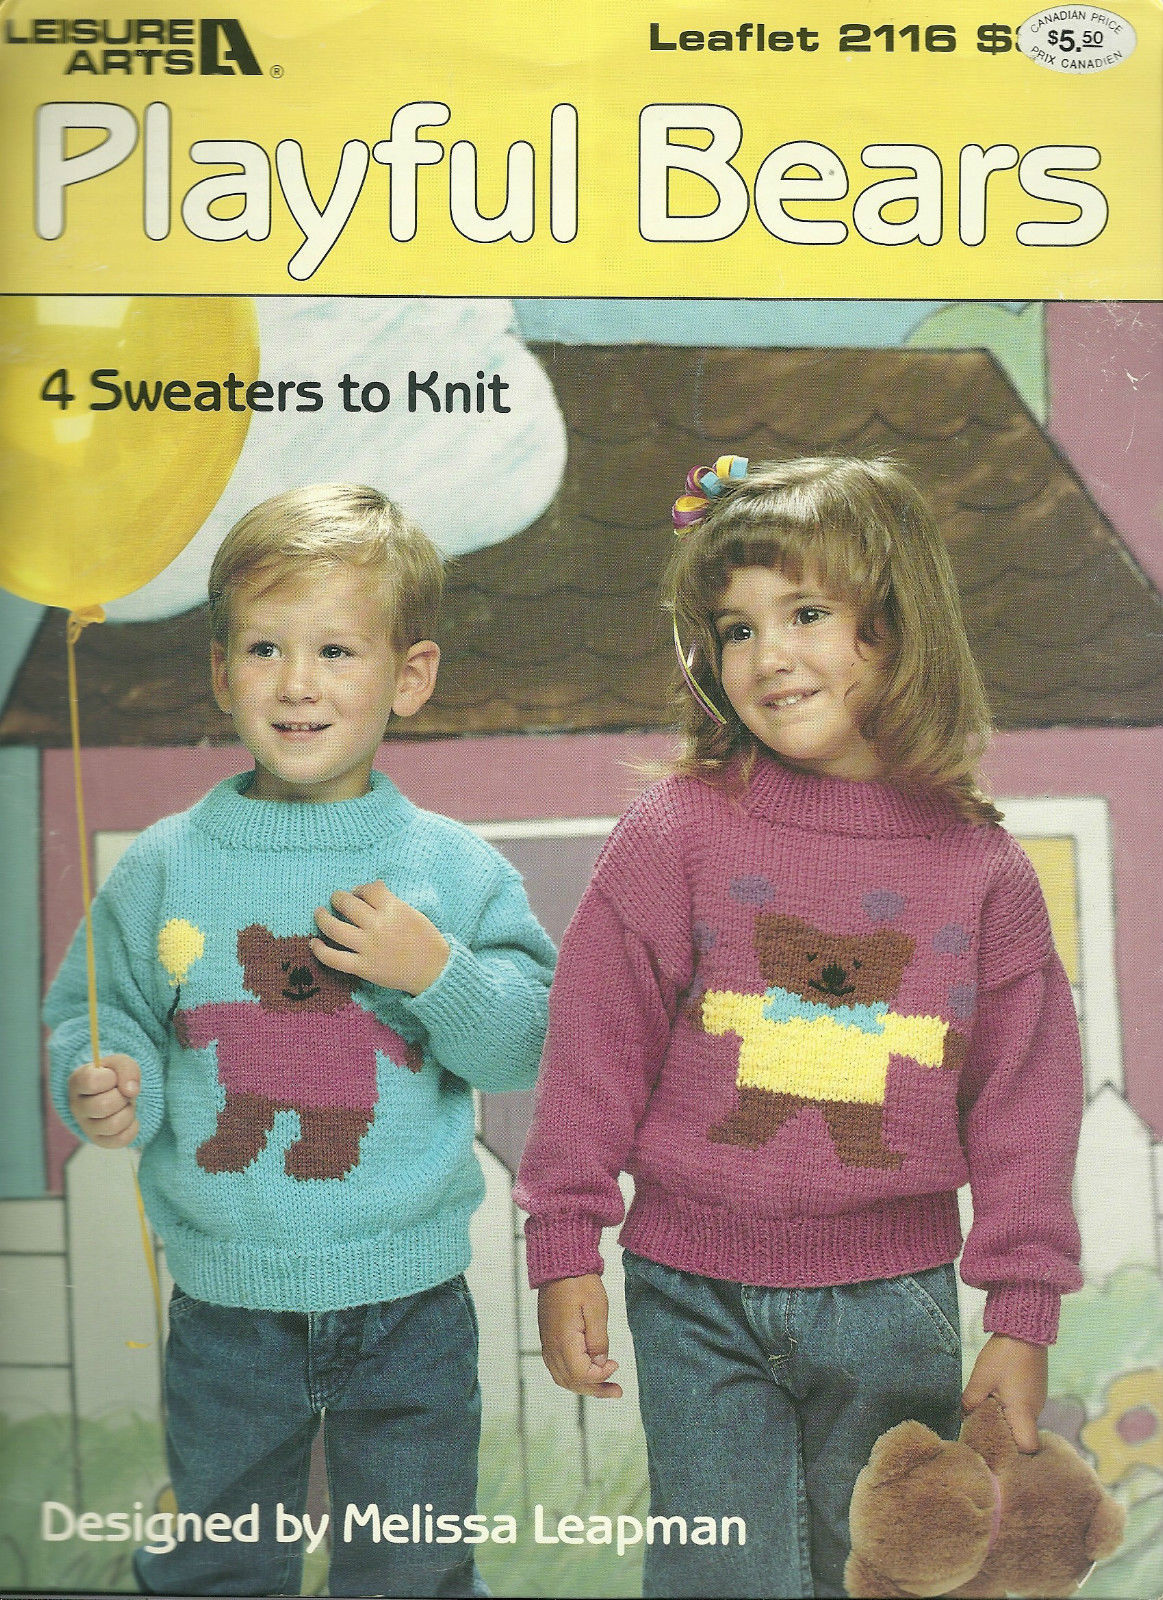 Playful Bears Leisure Arts Pattern Leaflet No. 2116 Childrens Knitted Sweater